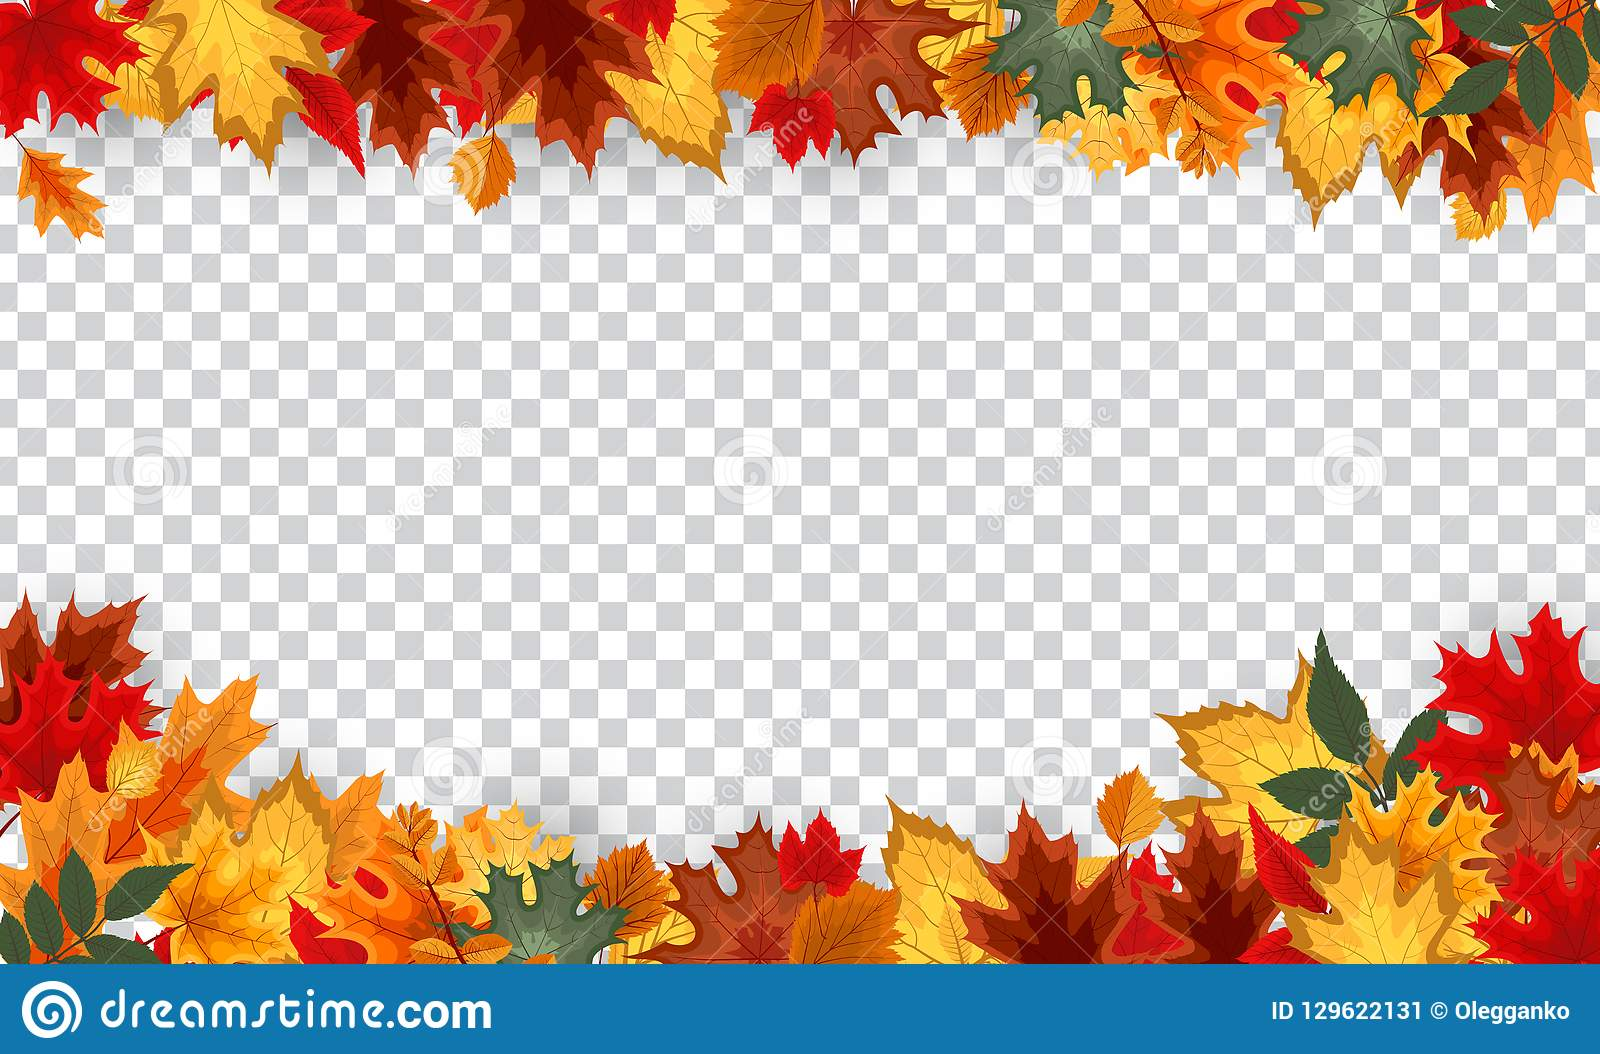 Border Thanksgiving Stock Illustrations 10 838 Border Thanksgiving Stock Illustrations Vectors Clipart Dreamstime Free for commercial use no attribution required high quality images. https www dreamstime com autumn leaves border frame space text transparent background can be used thanksgiving harvest holiday decoration image129622131